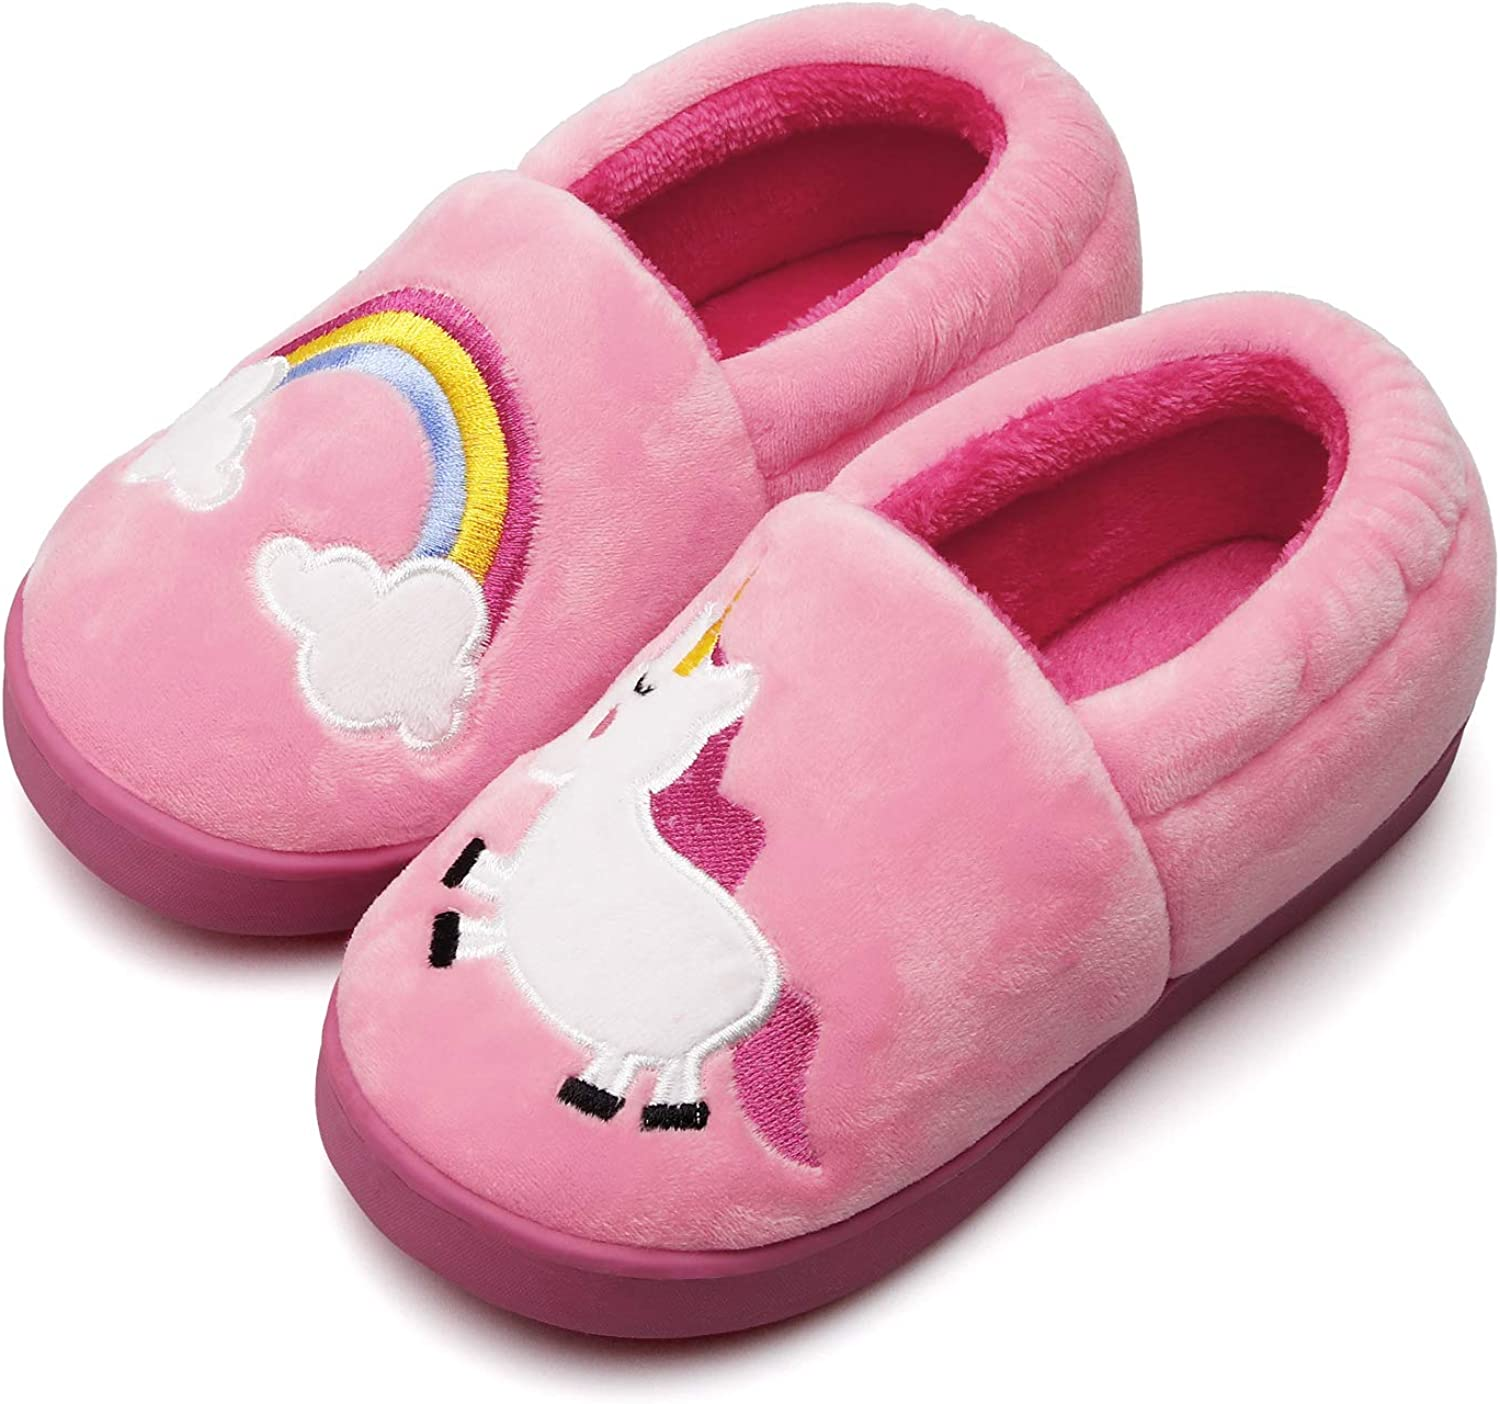 Plush Warm Slippers for Girls Boys Kids Toddlers Winter Fur Lined Indoor House Home Shoes